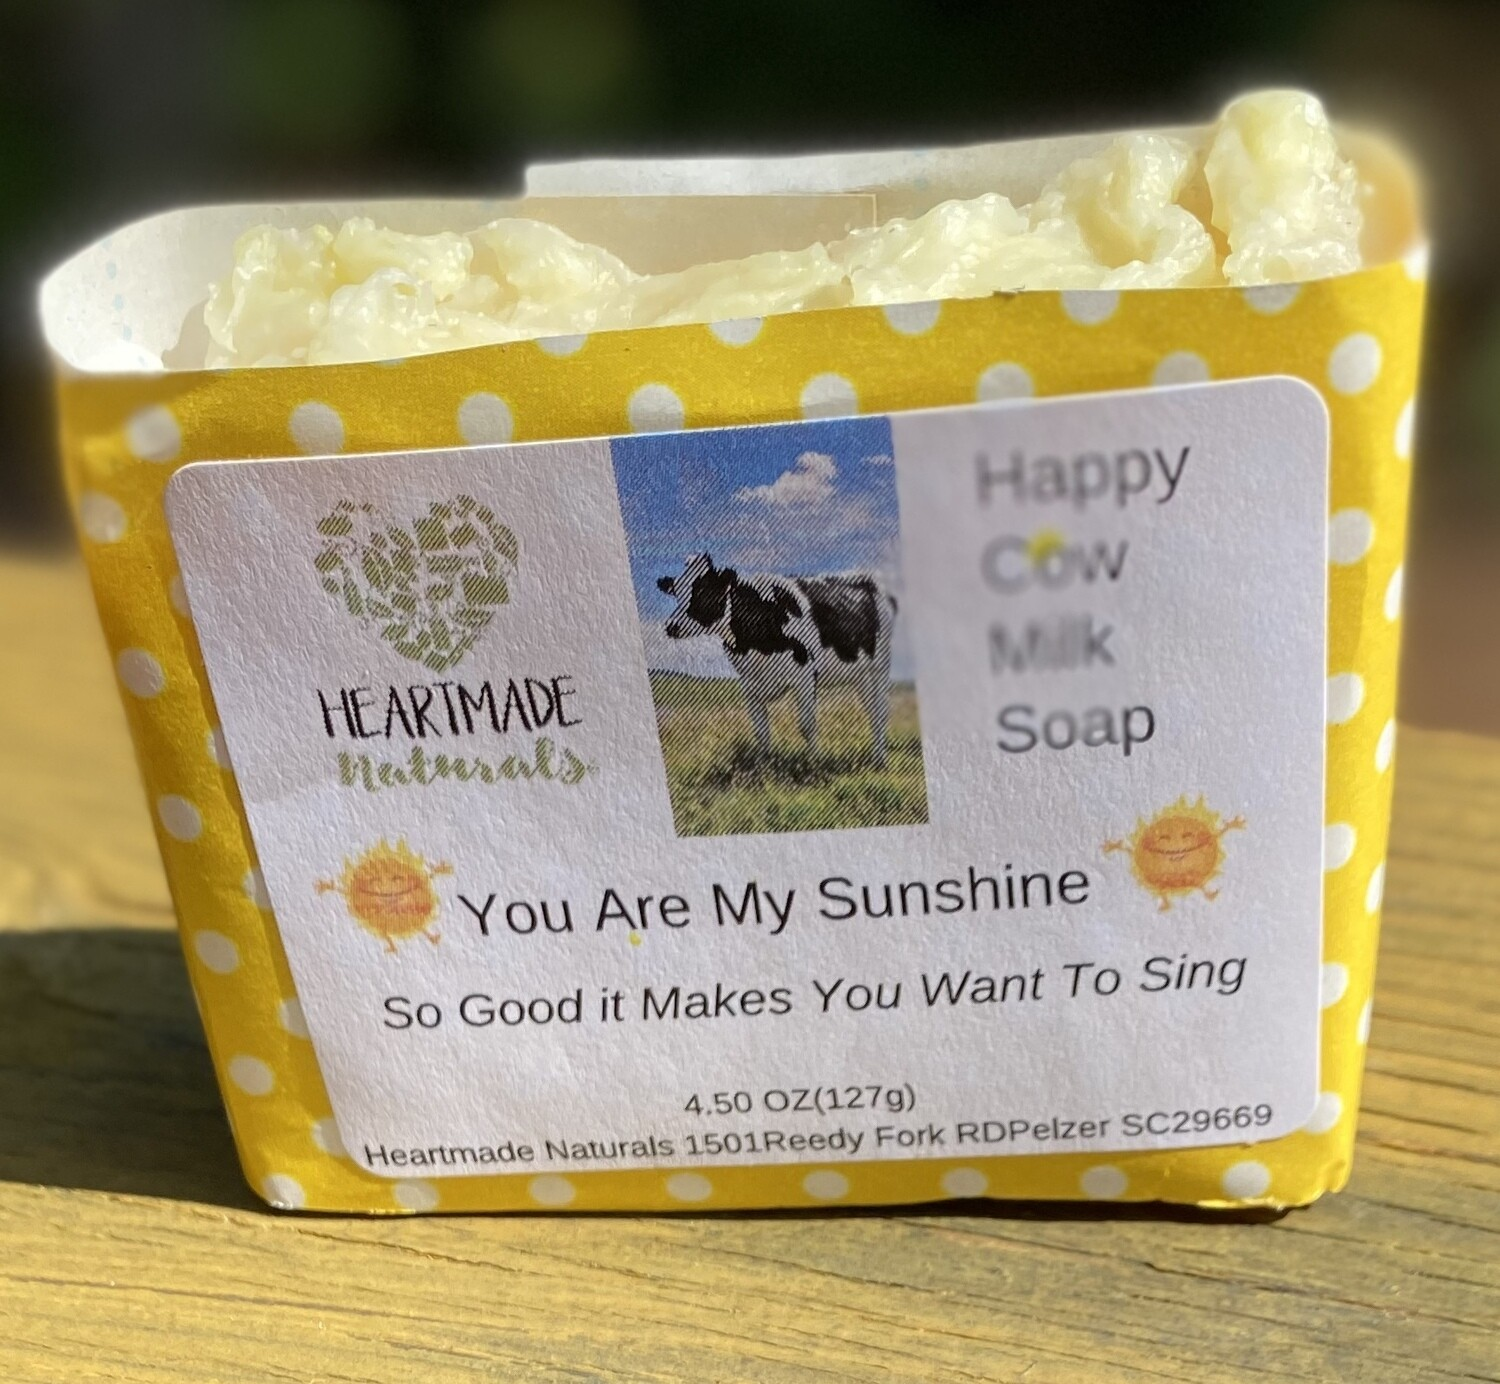 Happy Cow milk Soap. You are my sunshine